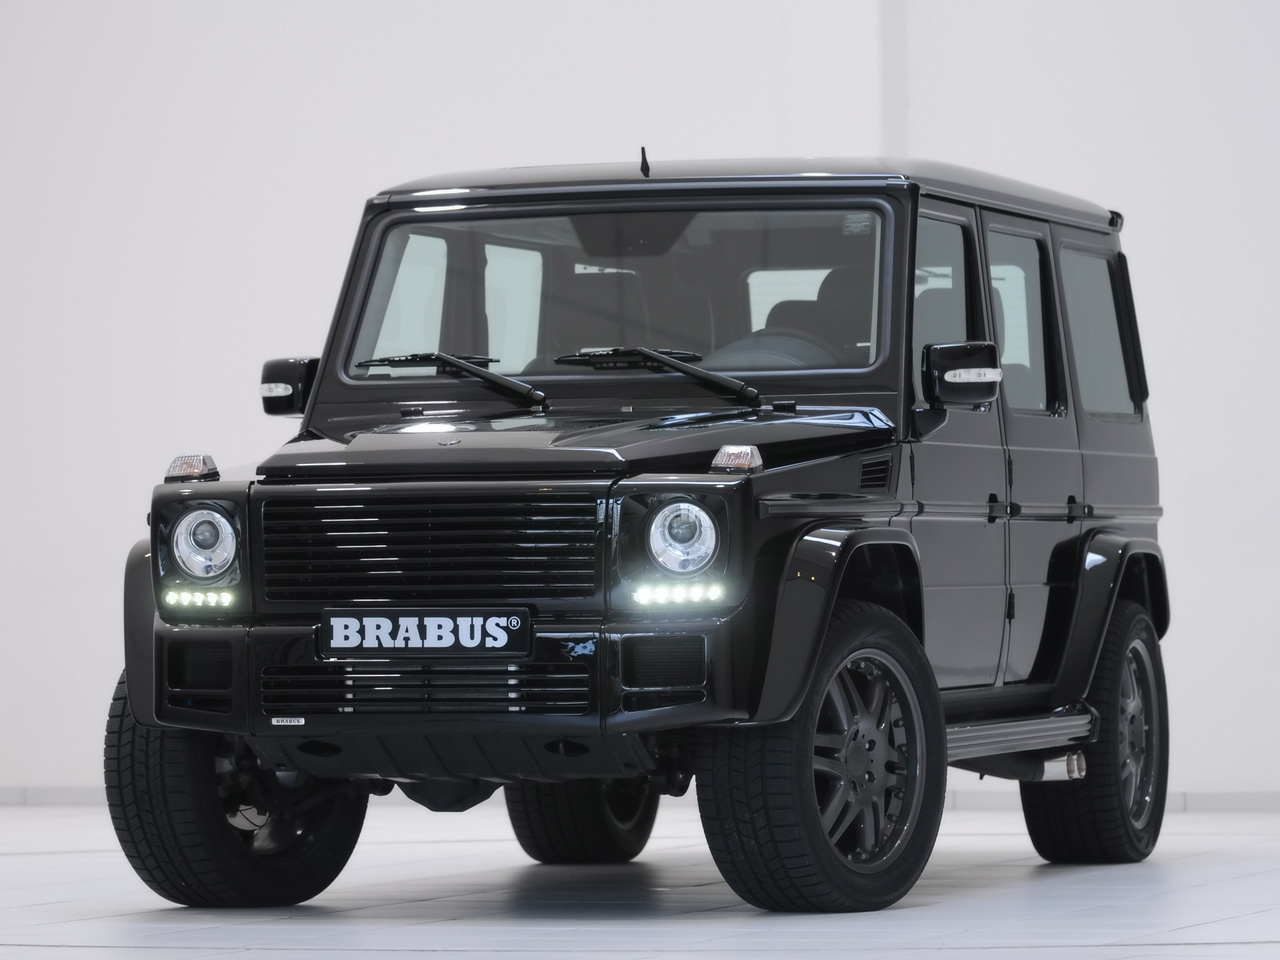 Mercedes benz brabus price in malaysia for How much mercedes benz cost